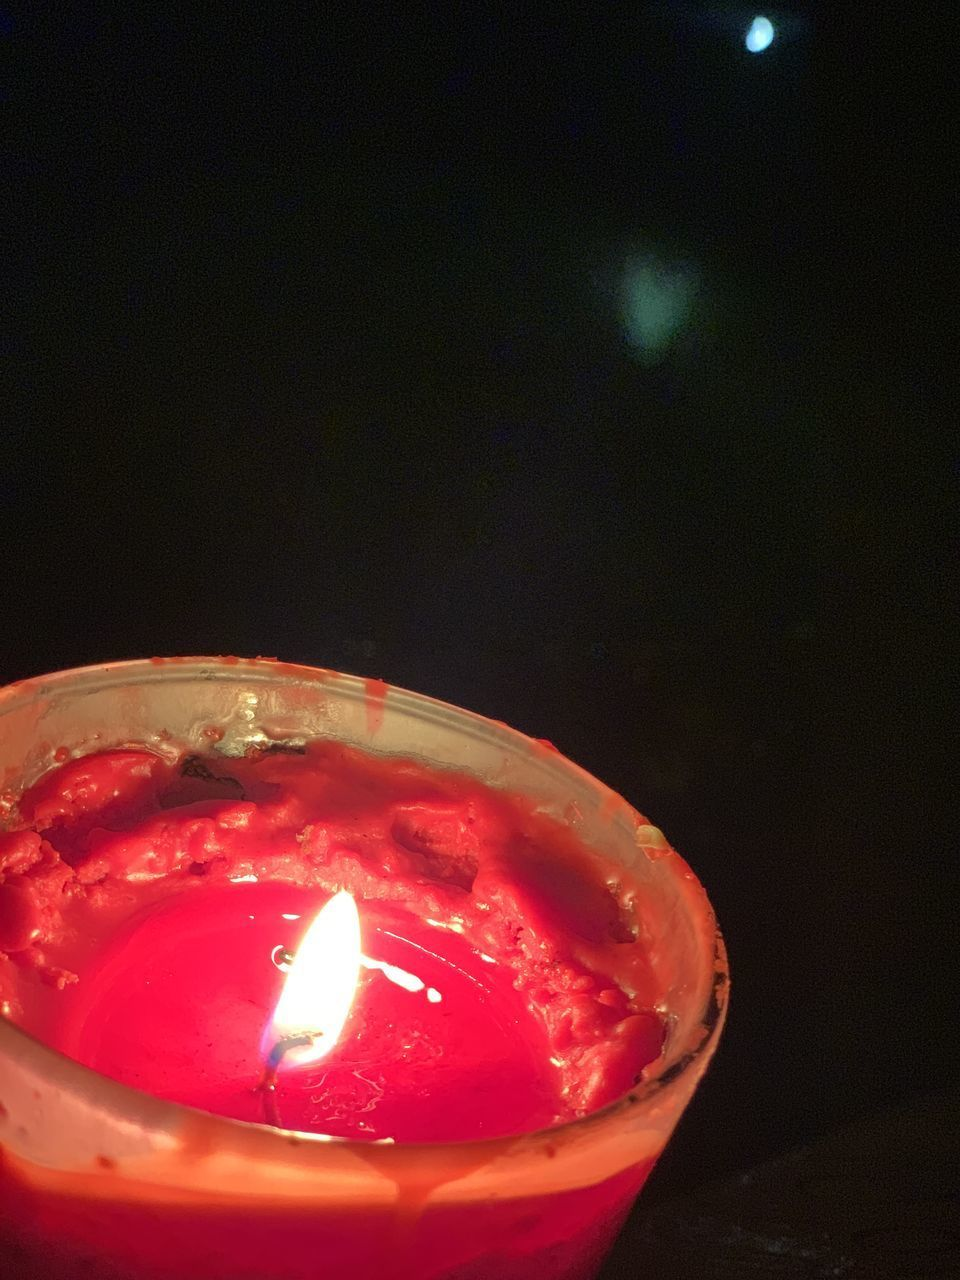 red, candle, burning, flame, close-up, no people, fire, indoors, illuminated, fire - natural phenomenon, copy space, heat - temperature, nature, food and drink, tea light, freshness, glass, still life, wax, melting